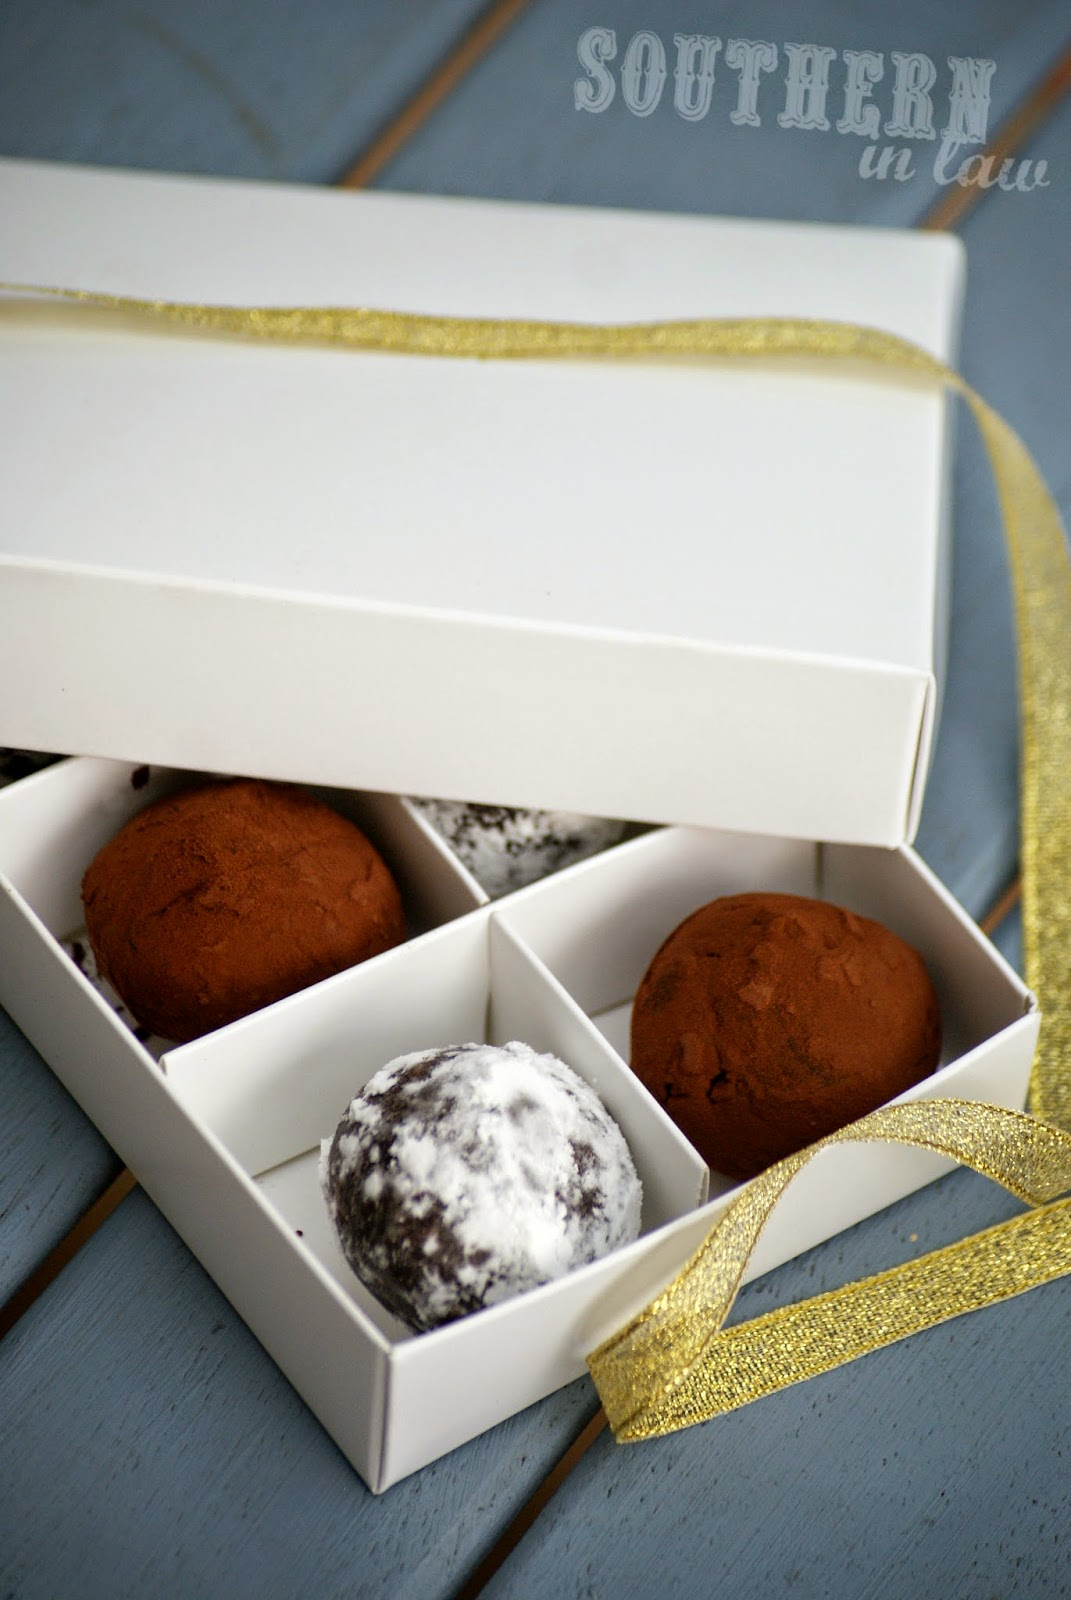 How to Package Homemade Chocolates for Gifting - Easy Homemade Chocolate Gift Ideas How-To - Homemade Chocolate Truffles Recipe